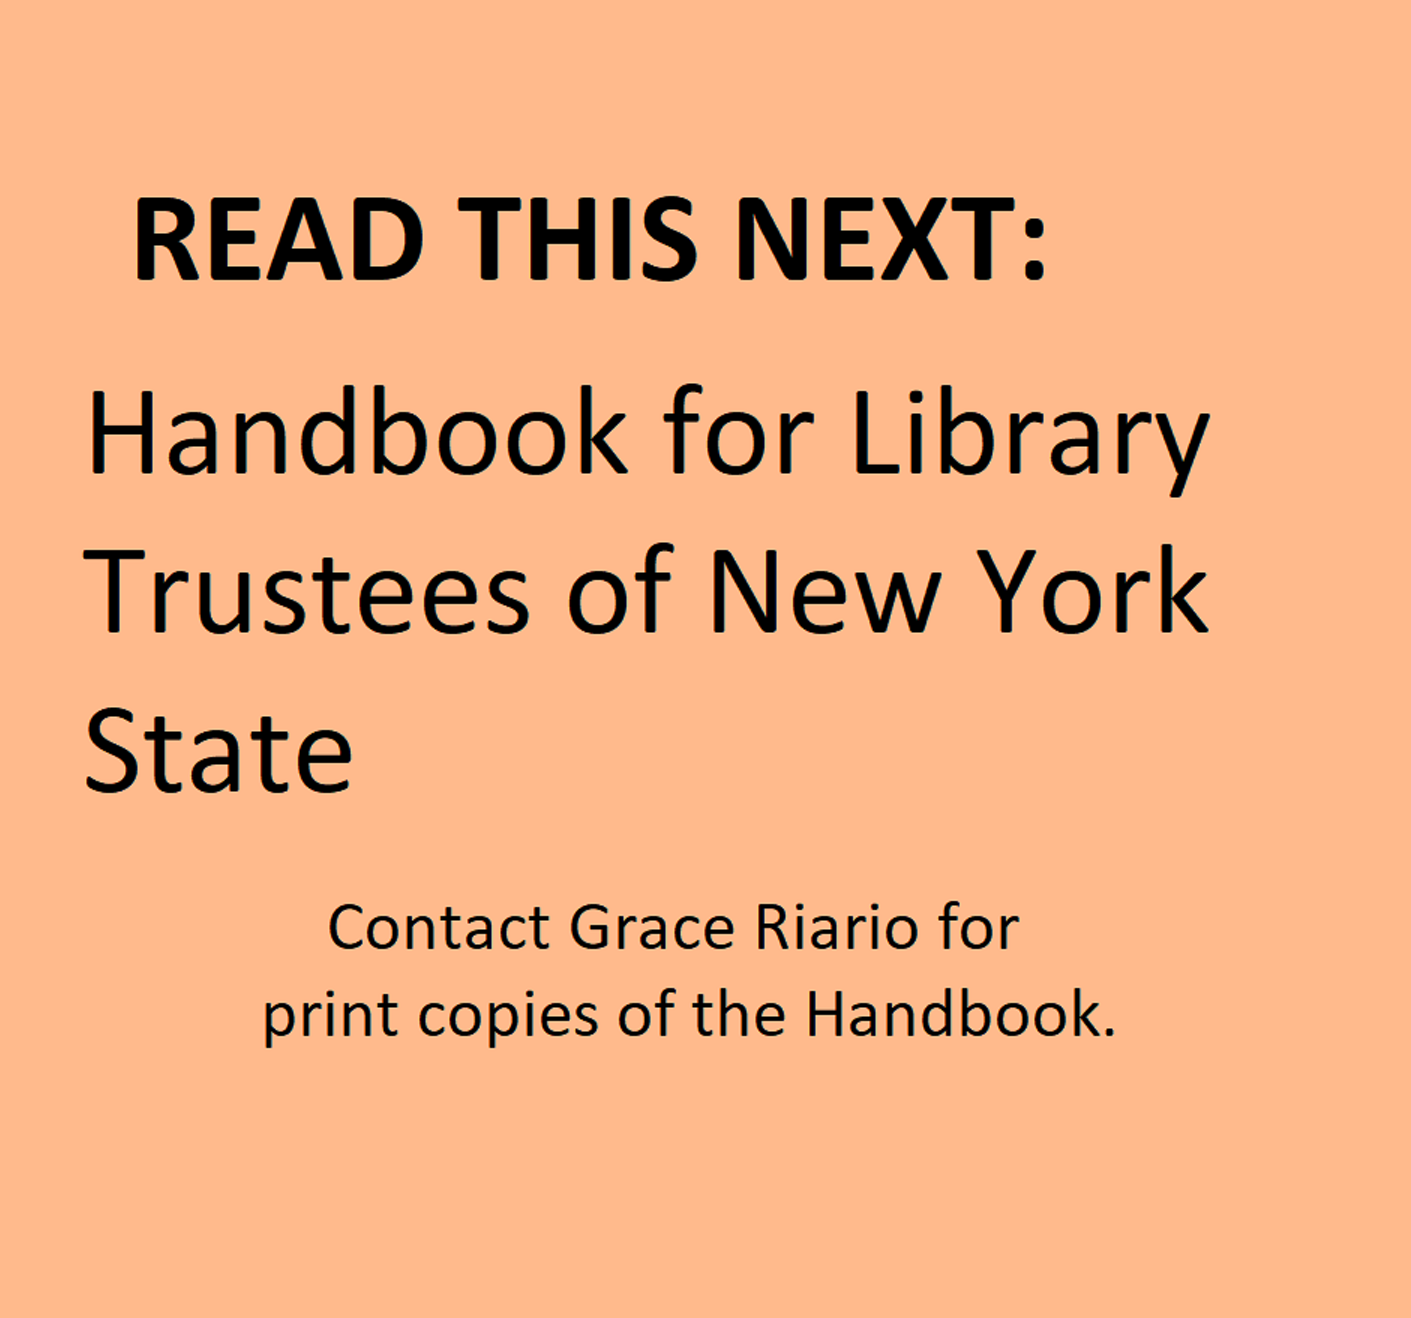 Handbook for library trustees of NY State